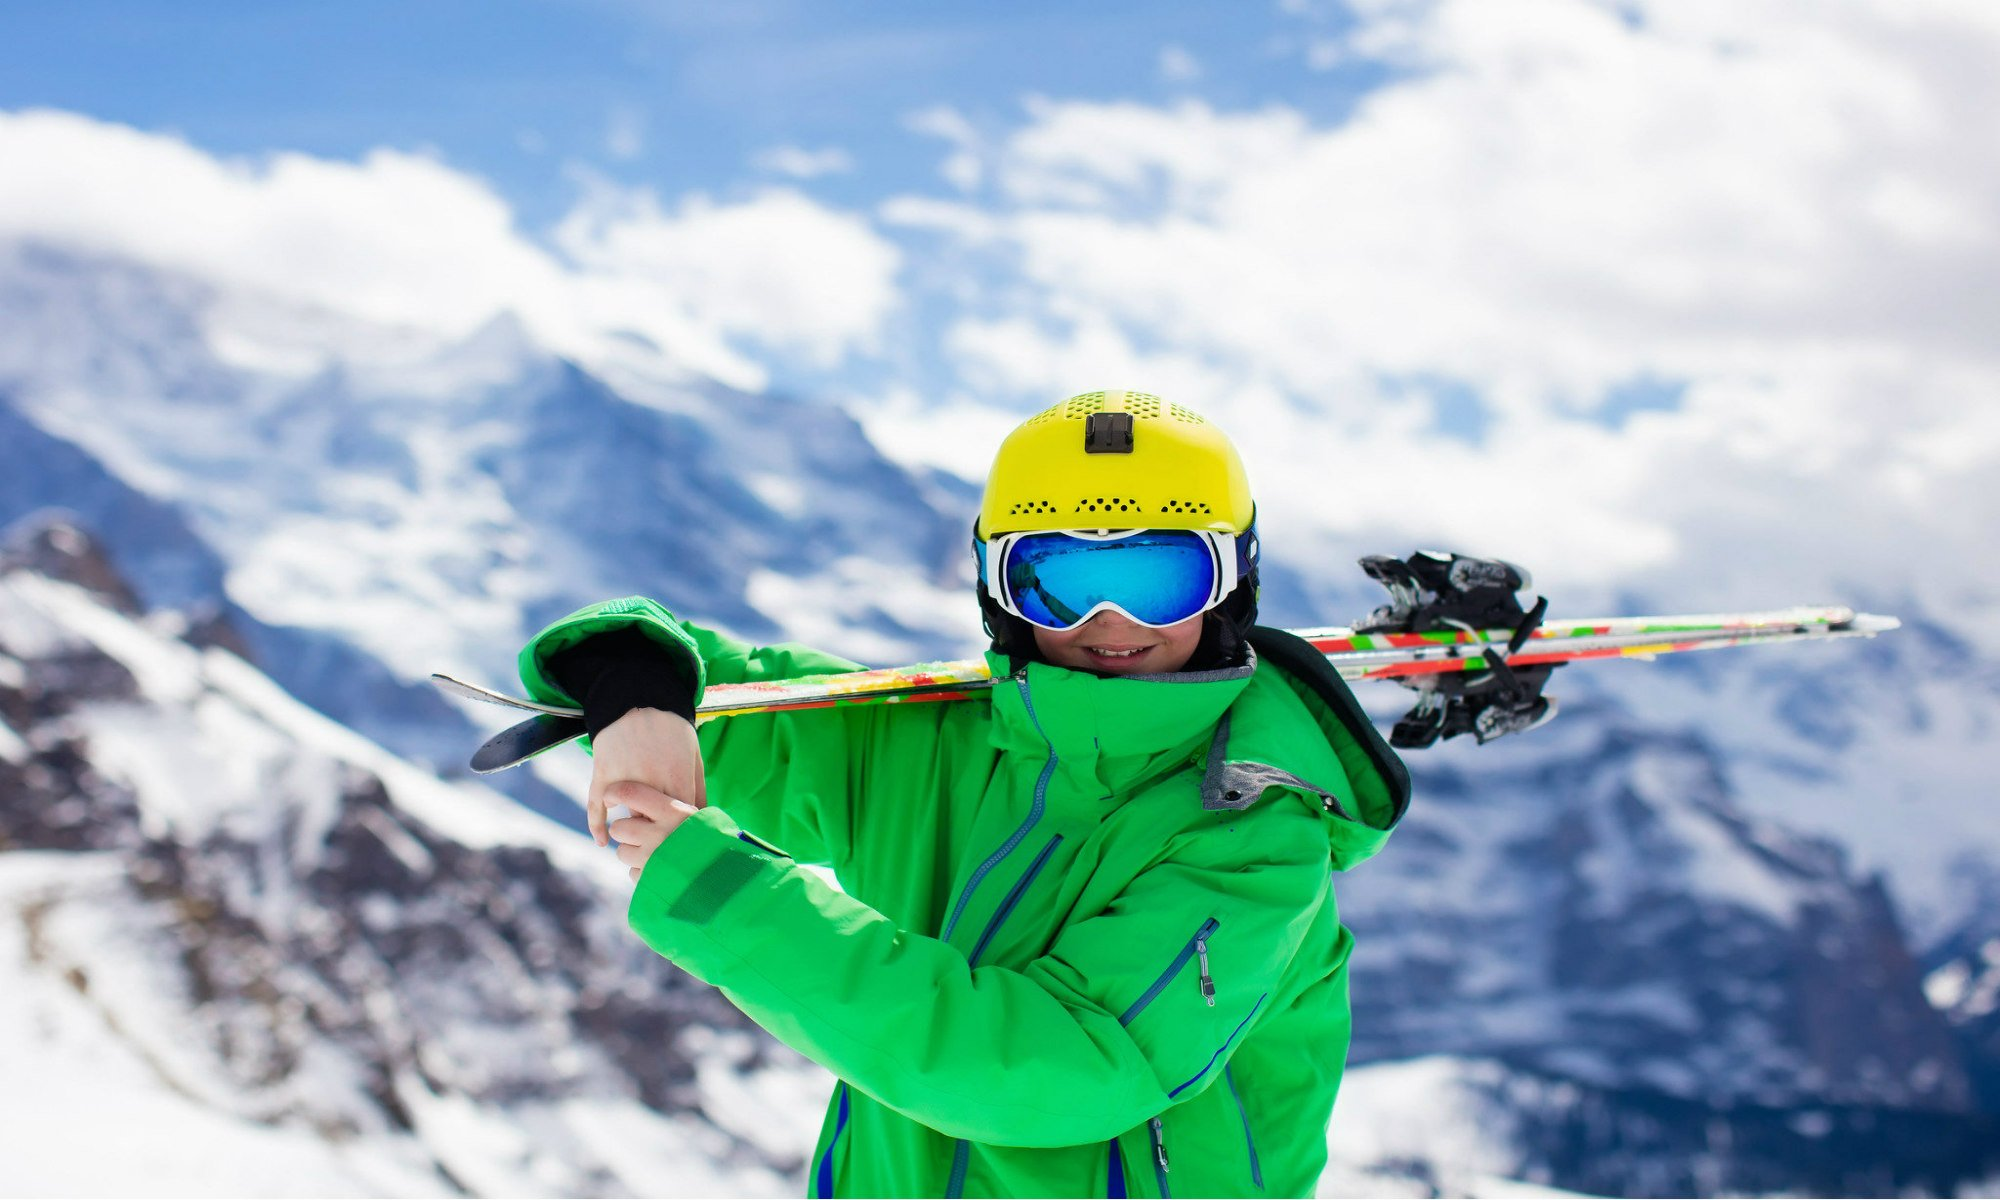 Smiling teenage skier with a snowy mountain backdrop.